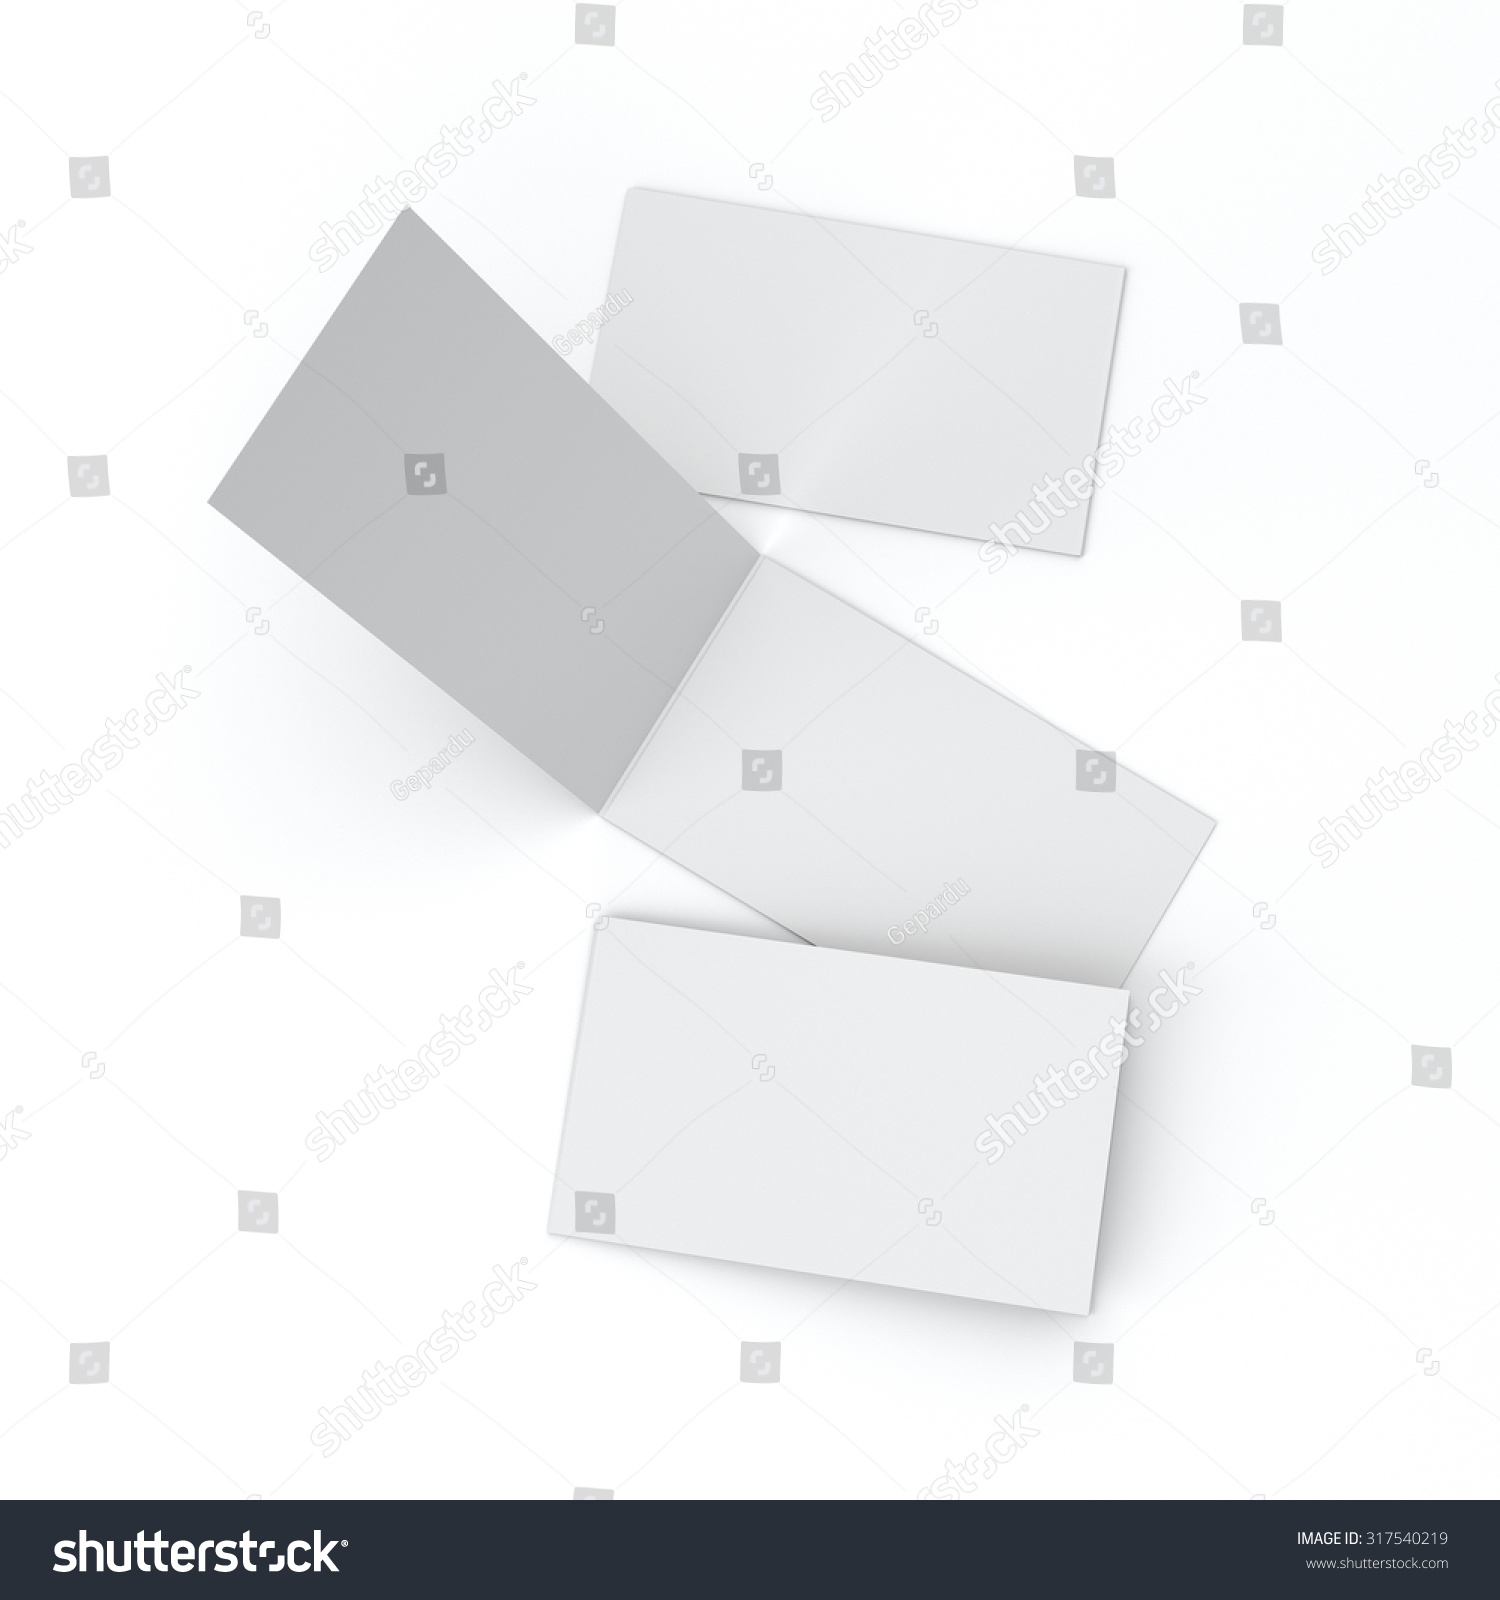 Blank Business Cards With Soft Shadows Isolated On White To Replace